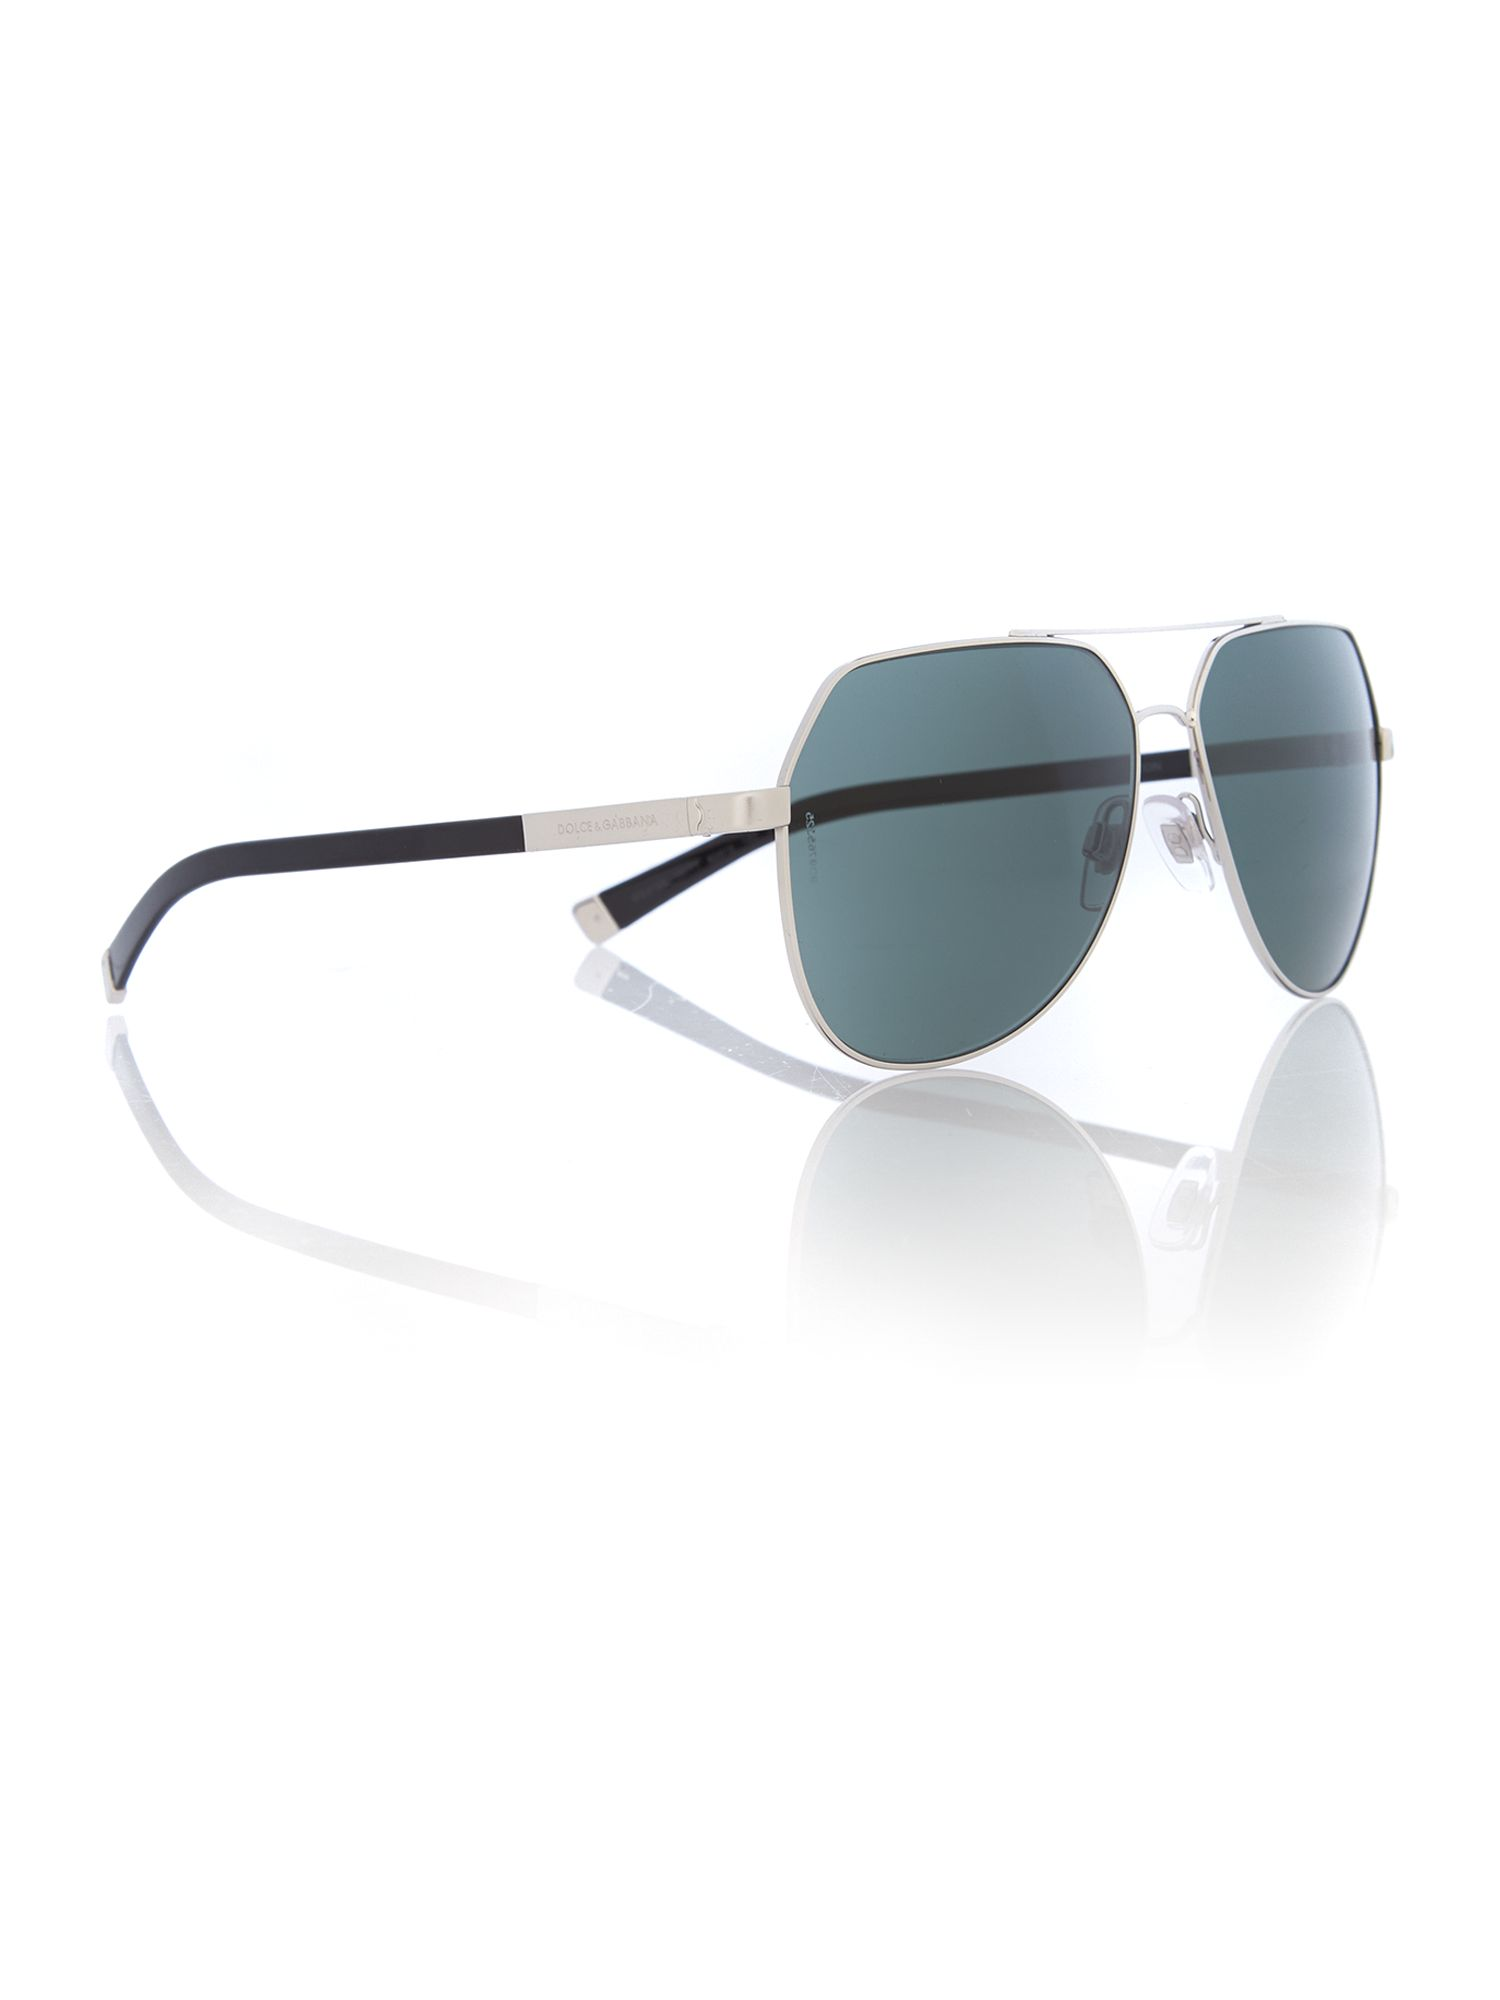 Men`s 0dg2133 sunglasses